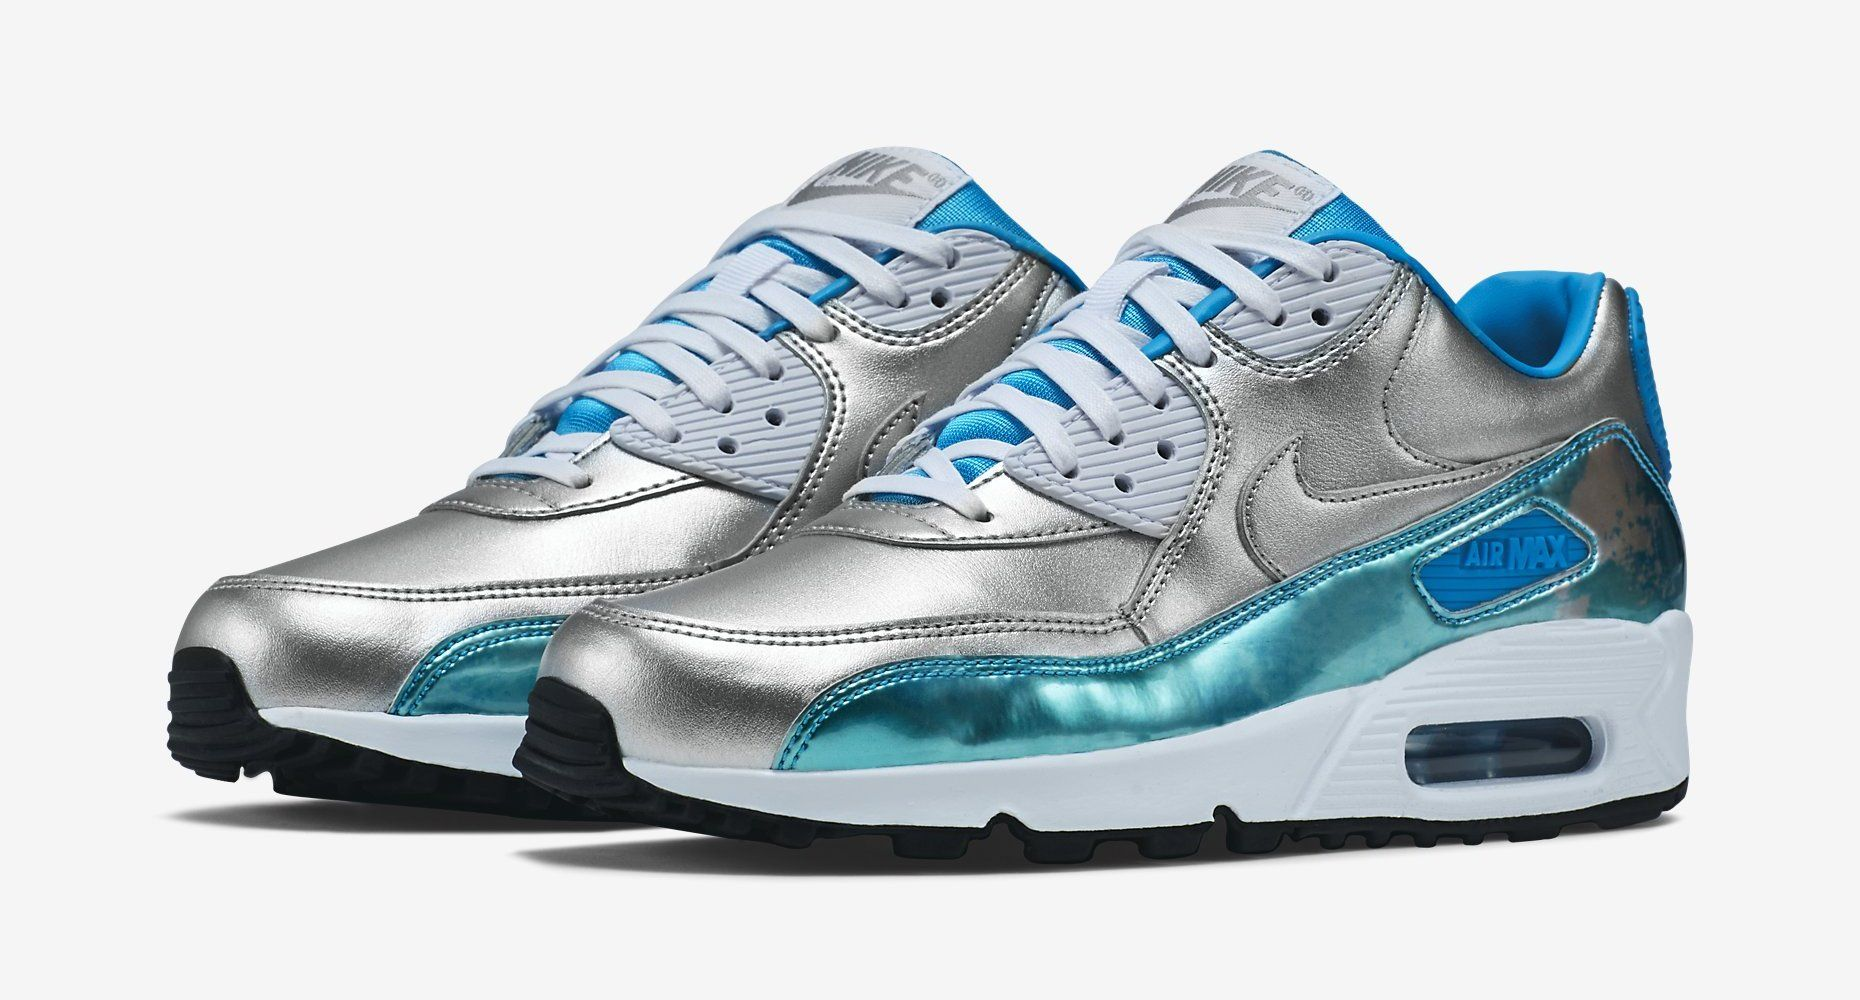 Nike Women's Air Max 90 Premium – Metallic Silver